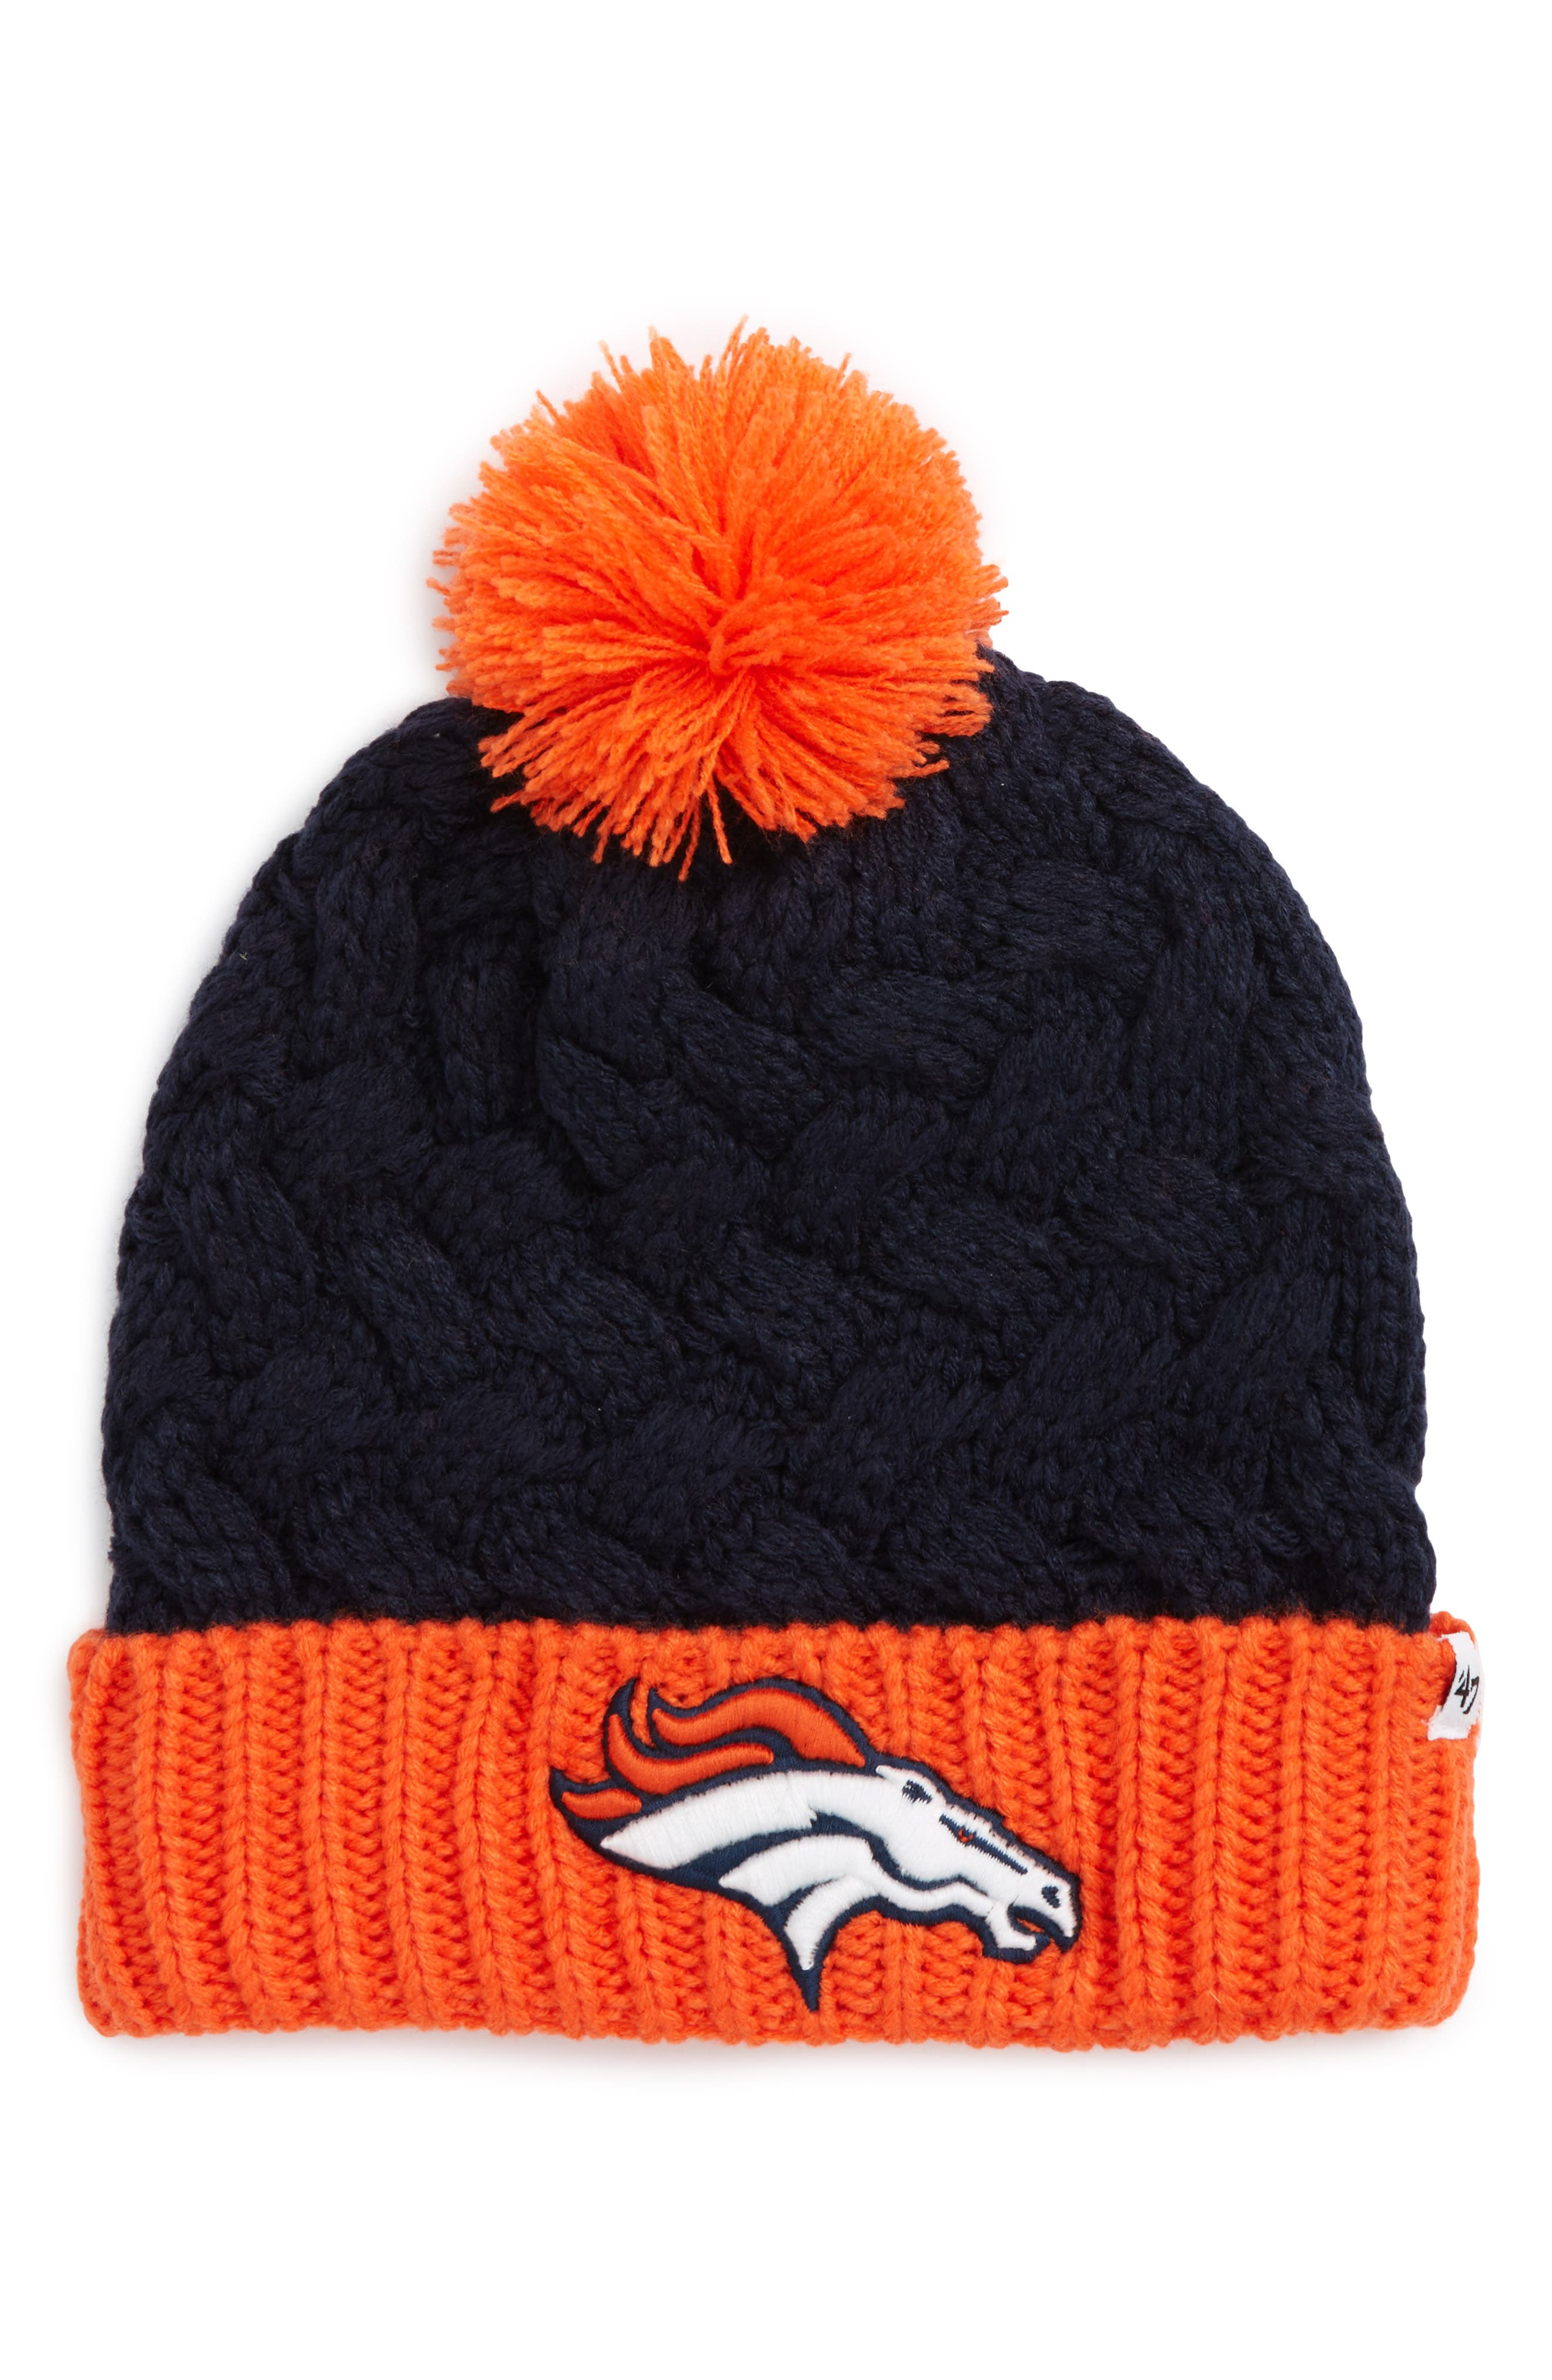 Alternate Image 1 Selected - '47 Matterhorn Denver Broncos Beanie